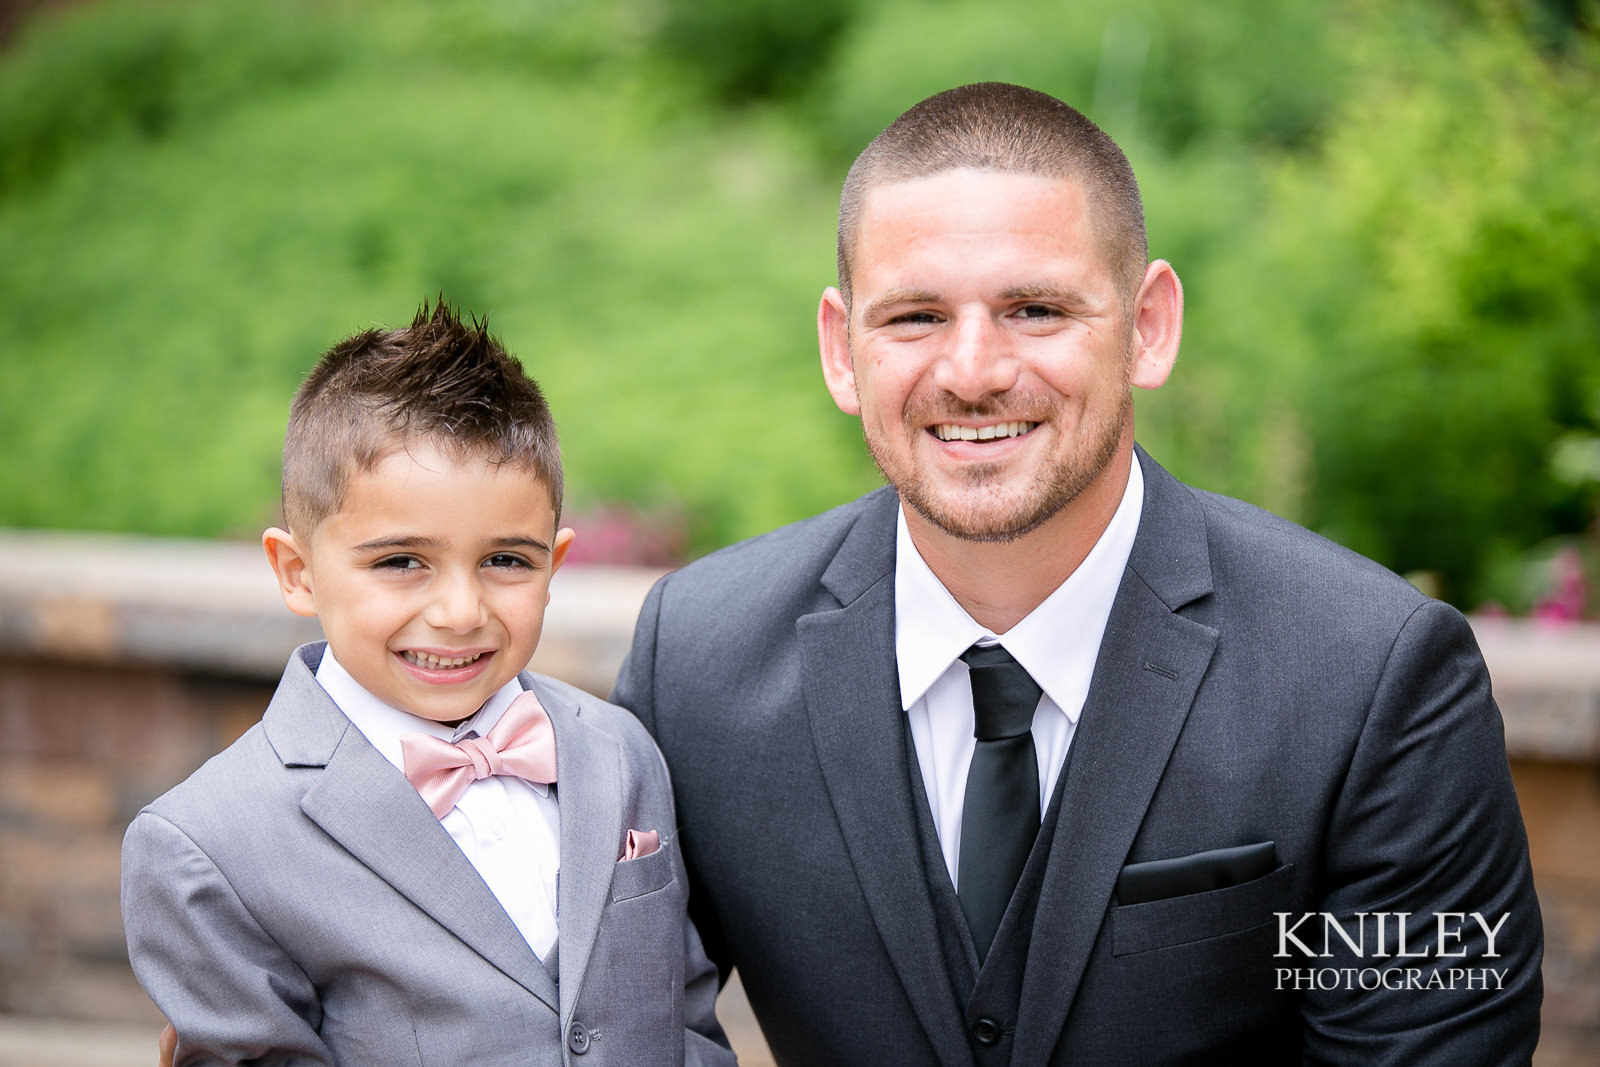 042 - Ravenwood Golf Club wedding pictures - Rochester NY - Kniley Photography - IMG_8706.jpg